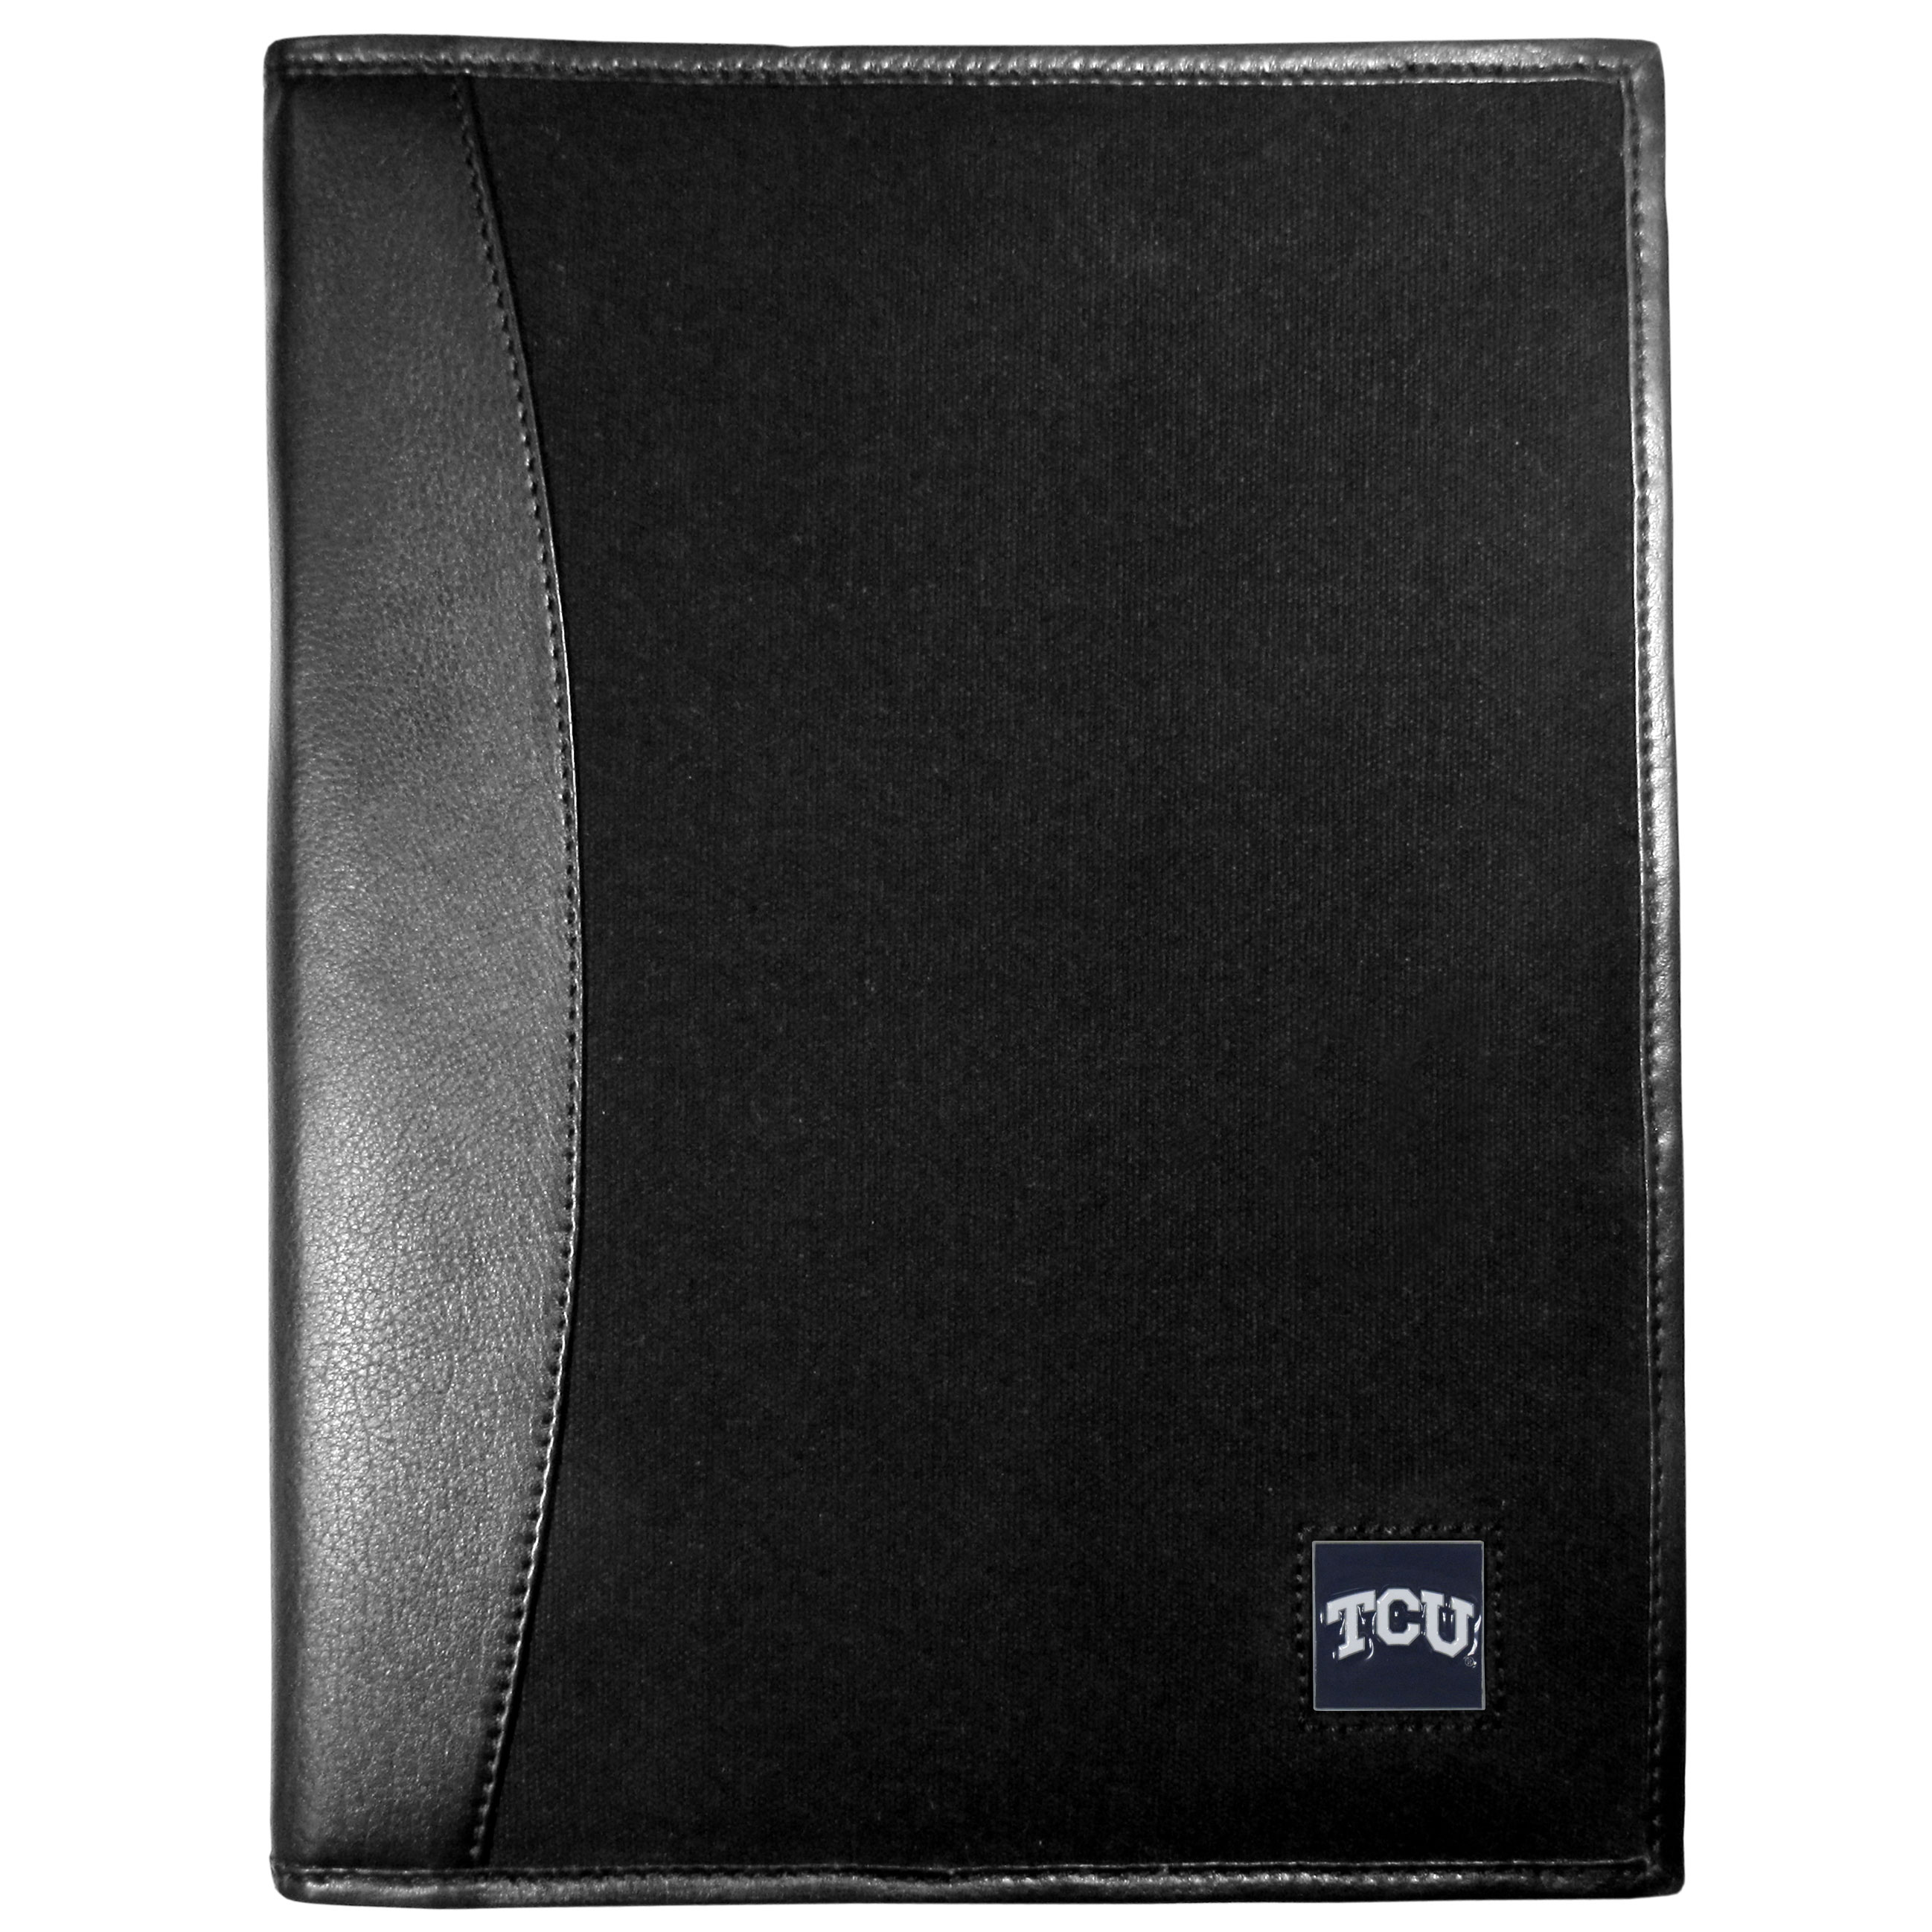 TCU Horned Frogs Leather and Canvas Padfolio - Our leather and canvas padfolio perfectly blends form and function. The attractive portfolio is bound in fine grain leather with an attractive canvas finish and the interior is a soft nylon. This high quality business accessory also features a fully cast metal TCU Horned Frogs emblem that is subtly set in the corner of the organizer. It is packed with features like 6 card slots for badges, business cards, hotel keys or credit cards and ID with a large pocket for loose papers and a writing tablet slot making it a must-have for the professional on the go.